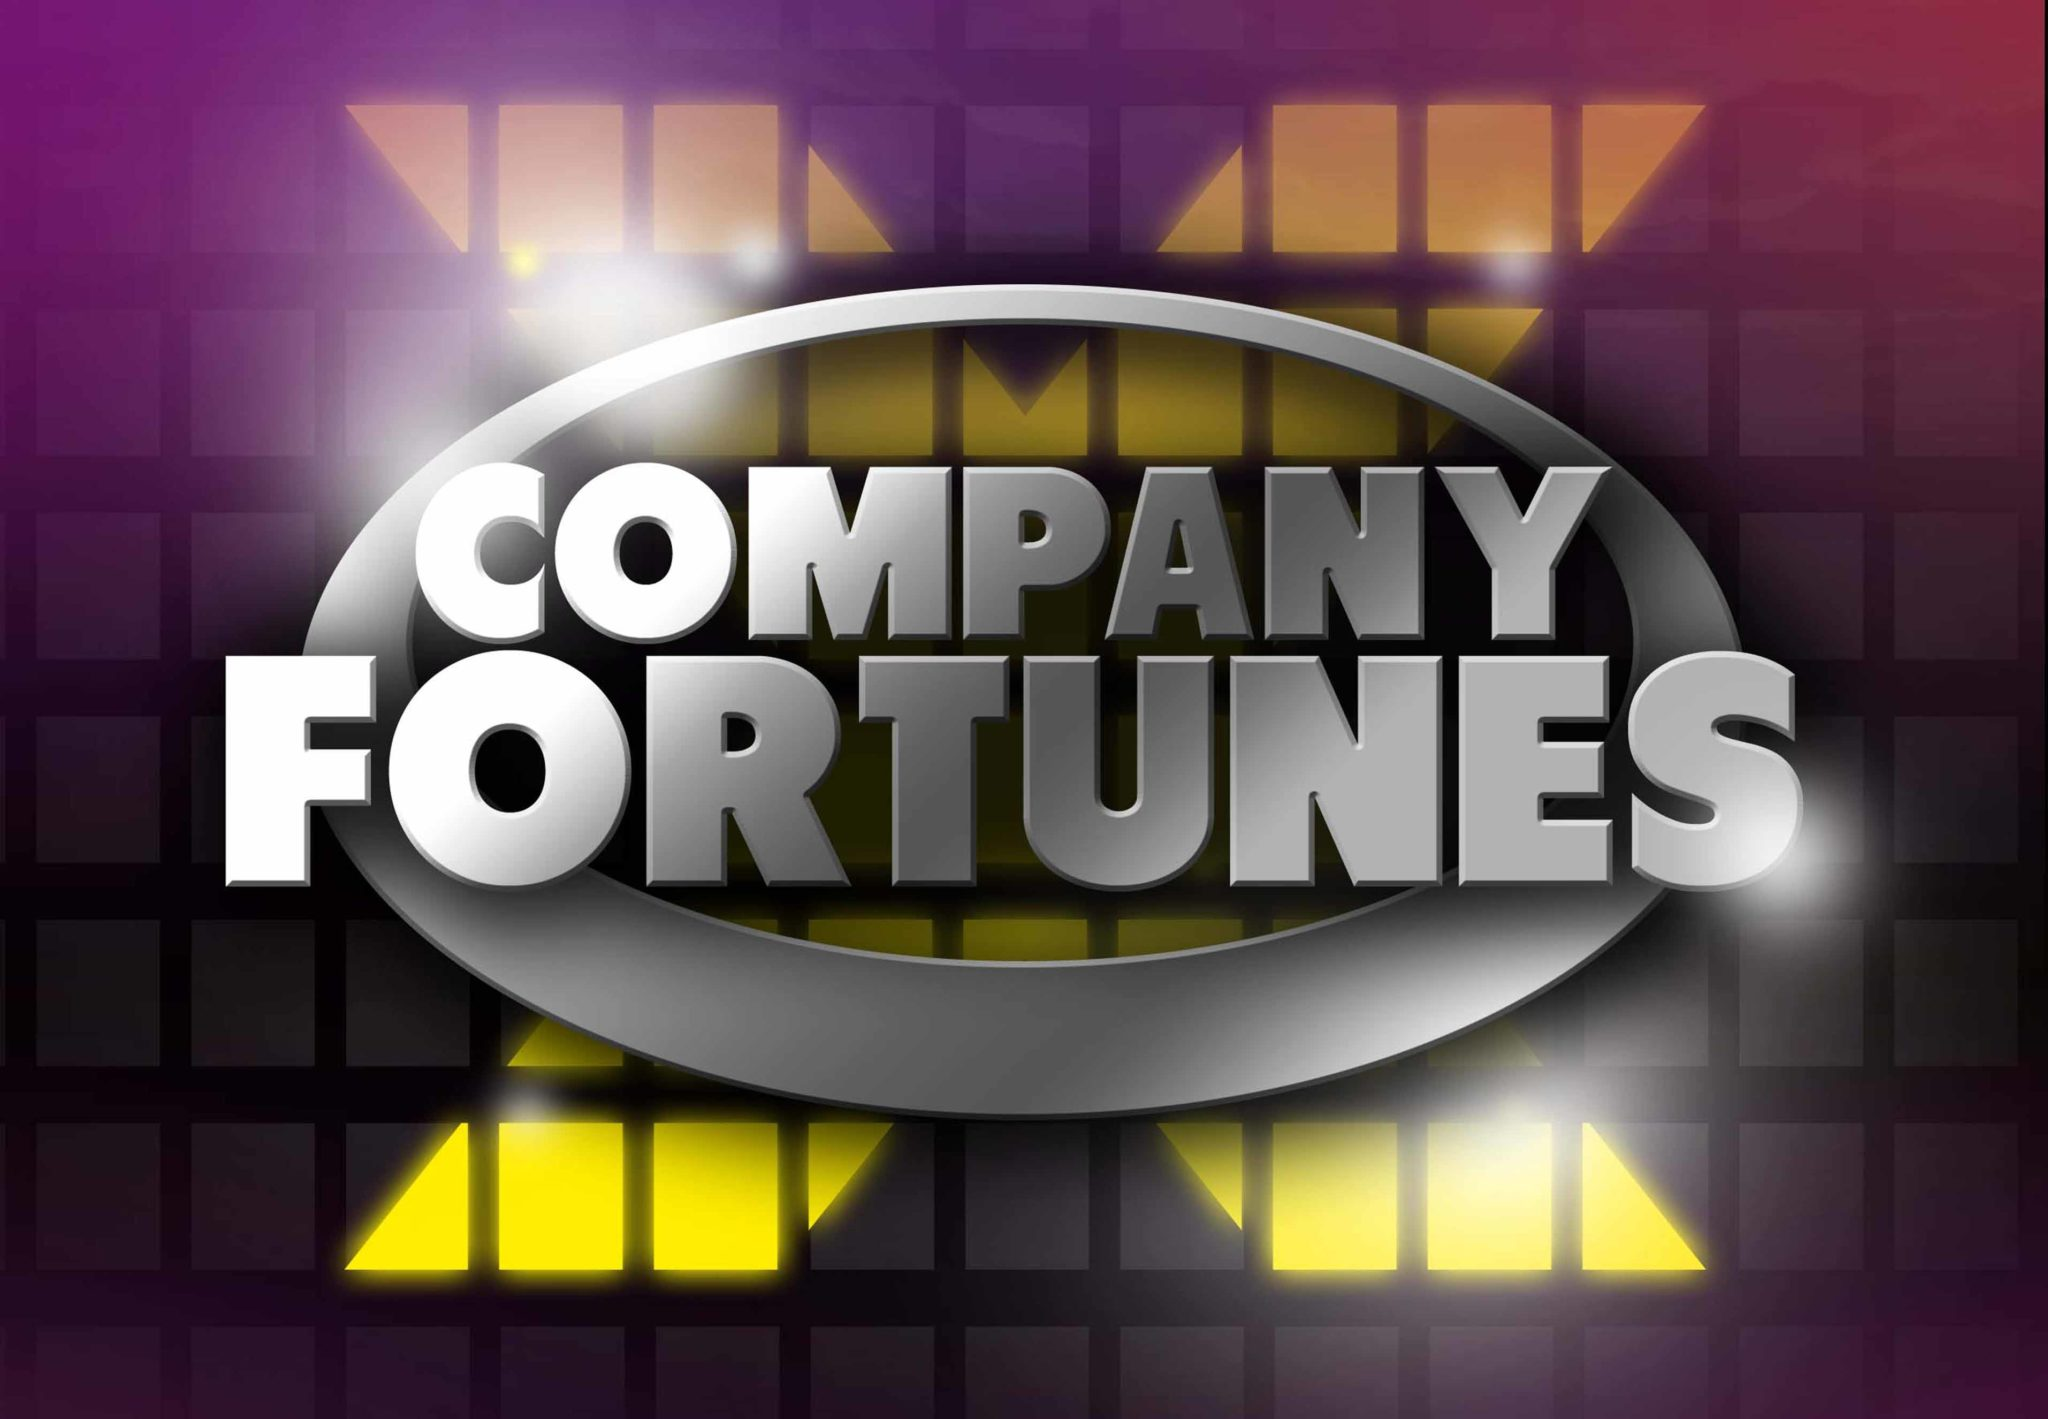 Company Fortunes